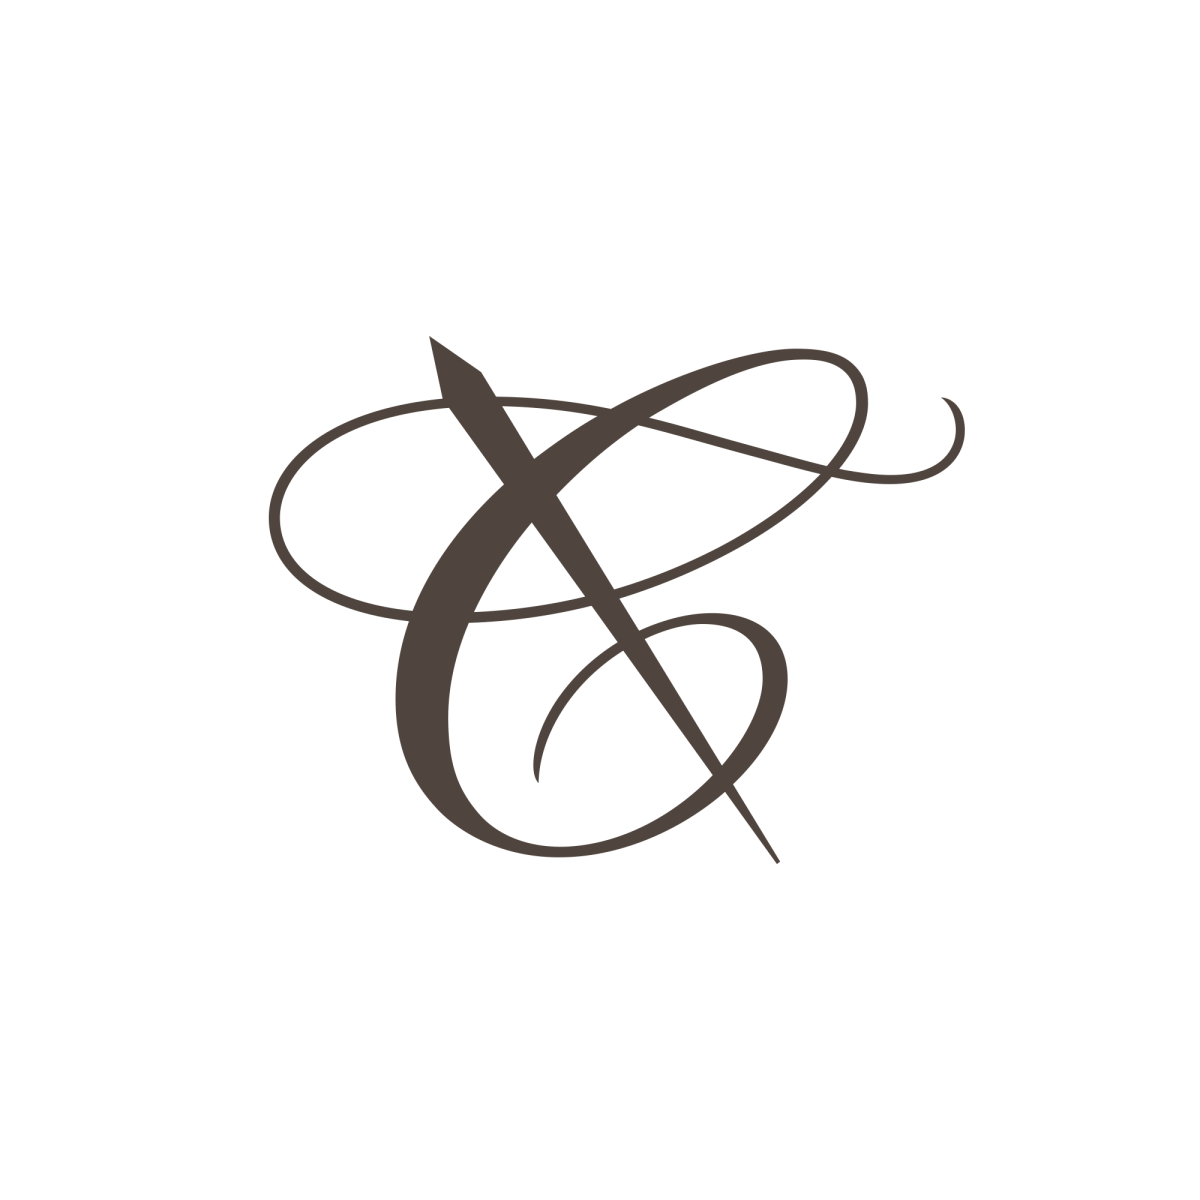 Logo with Needle, logo with Thread, Letter C logo, vector